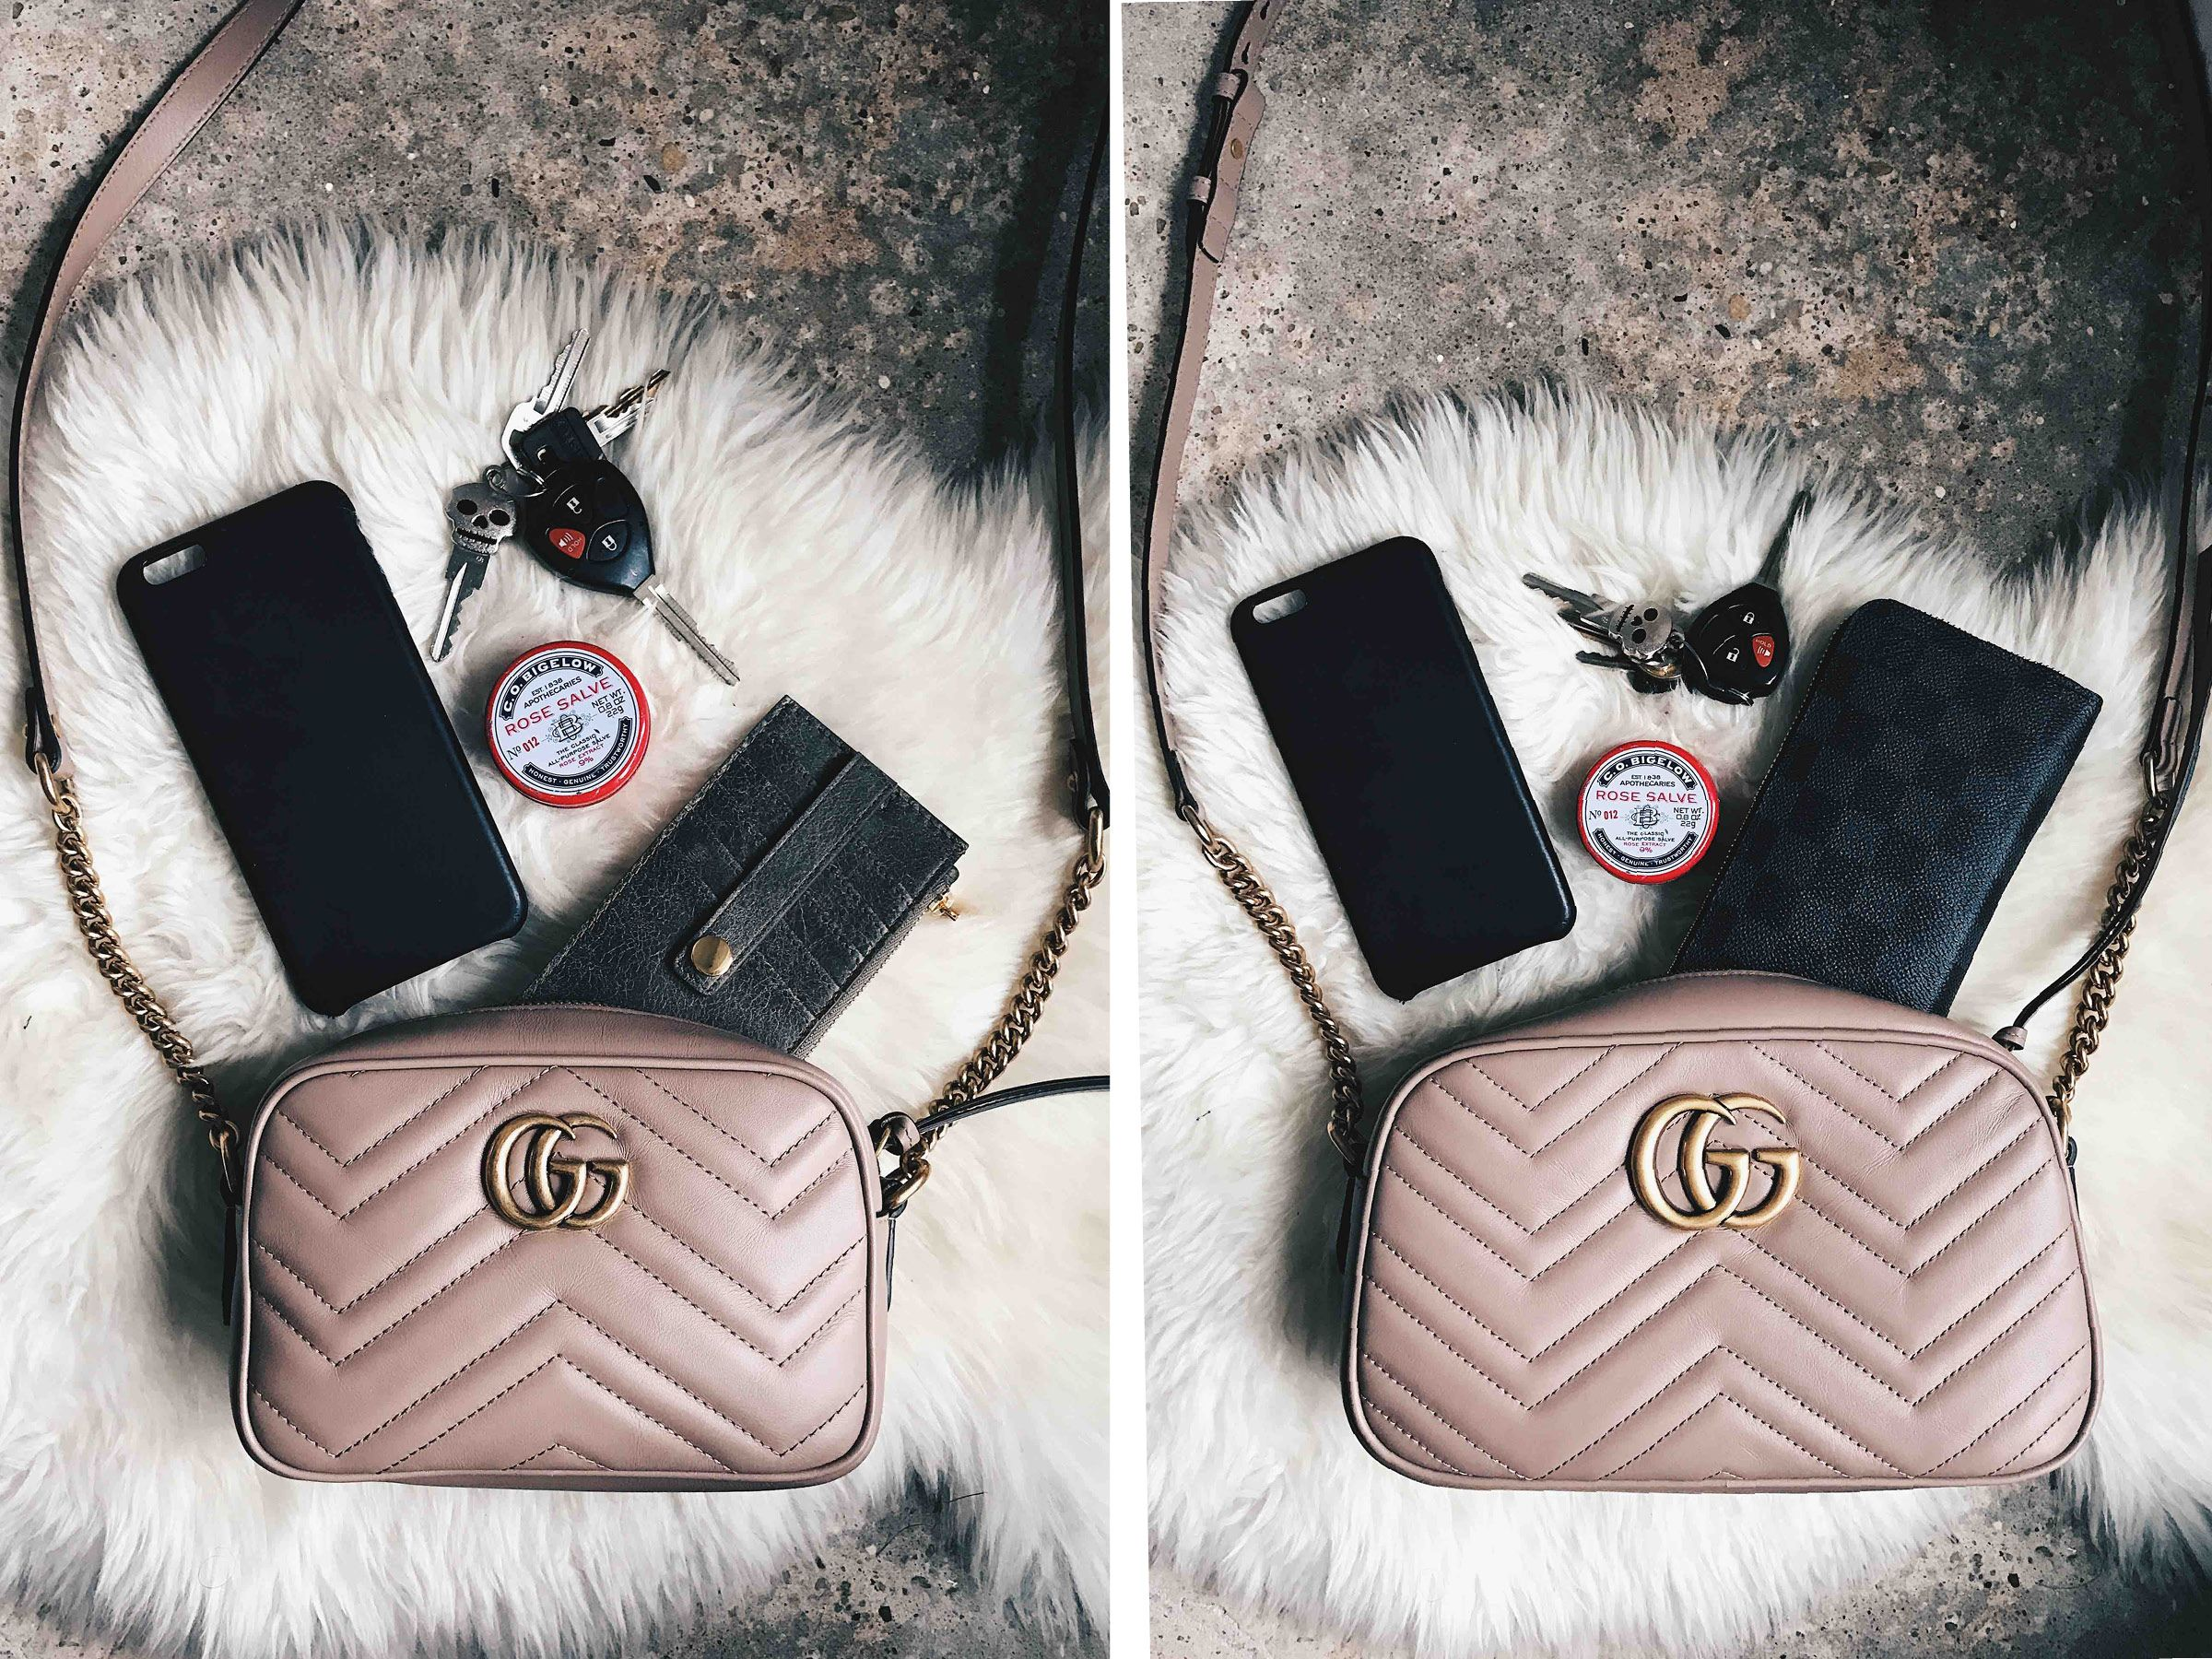 8bbb62046 DTKAustin shares the size comparison for the Gucci Mini and Small Marmont  Crossbody. If you're in the market for a new Gucci bag click here for more  ...